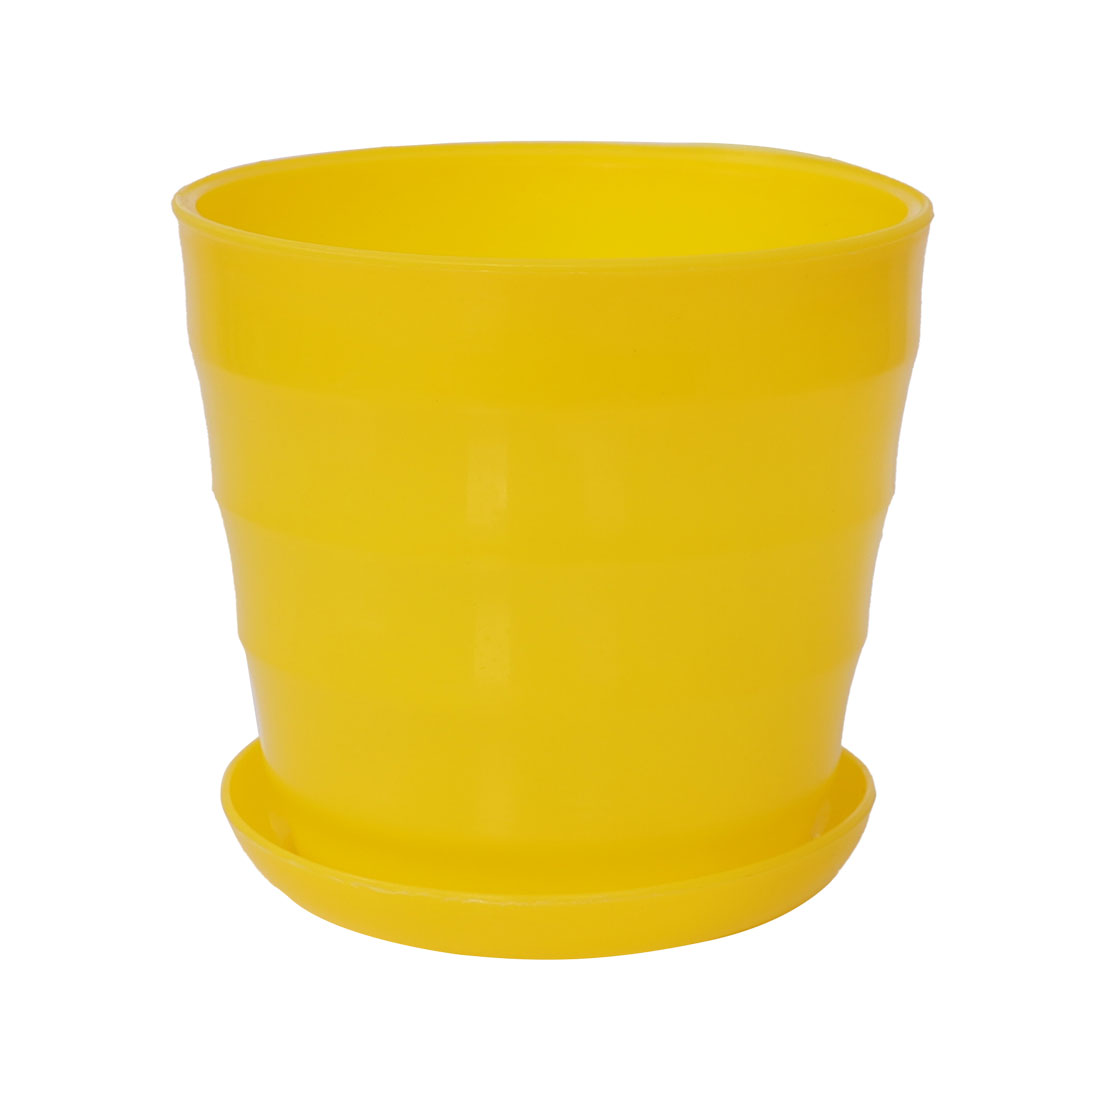 Home Office Plastic Round Plant Planter Container Flower Pot Yellow 13cm Dia